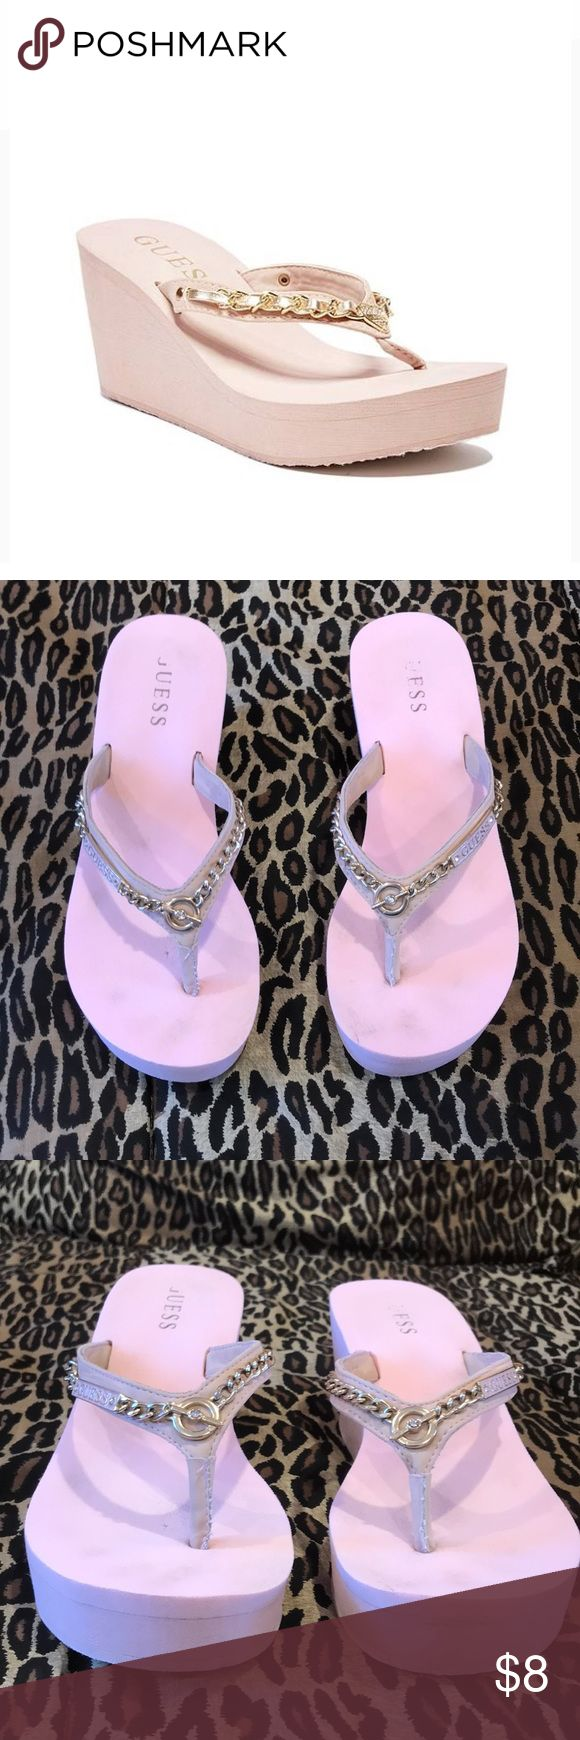 Guess wedge pink flip flops size 8 Guess wedge pink flip flops.  These pink  wedges look great on.  The strap is adorned with gold metal chains, the Guess logo in pink and crystals.  Size 8.  Good condition with plenty of life left. Guess Shoes Wedges